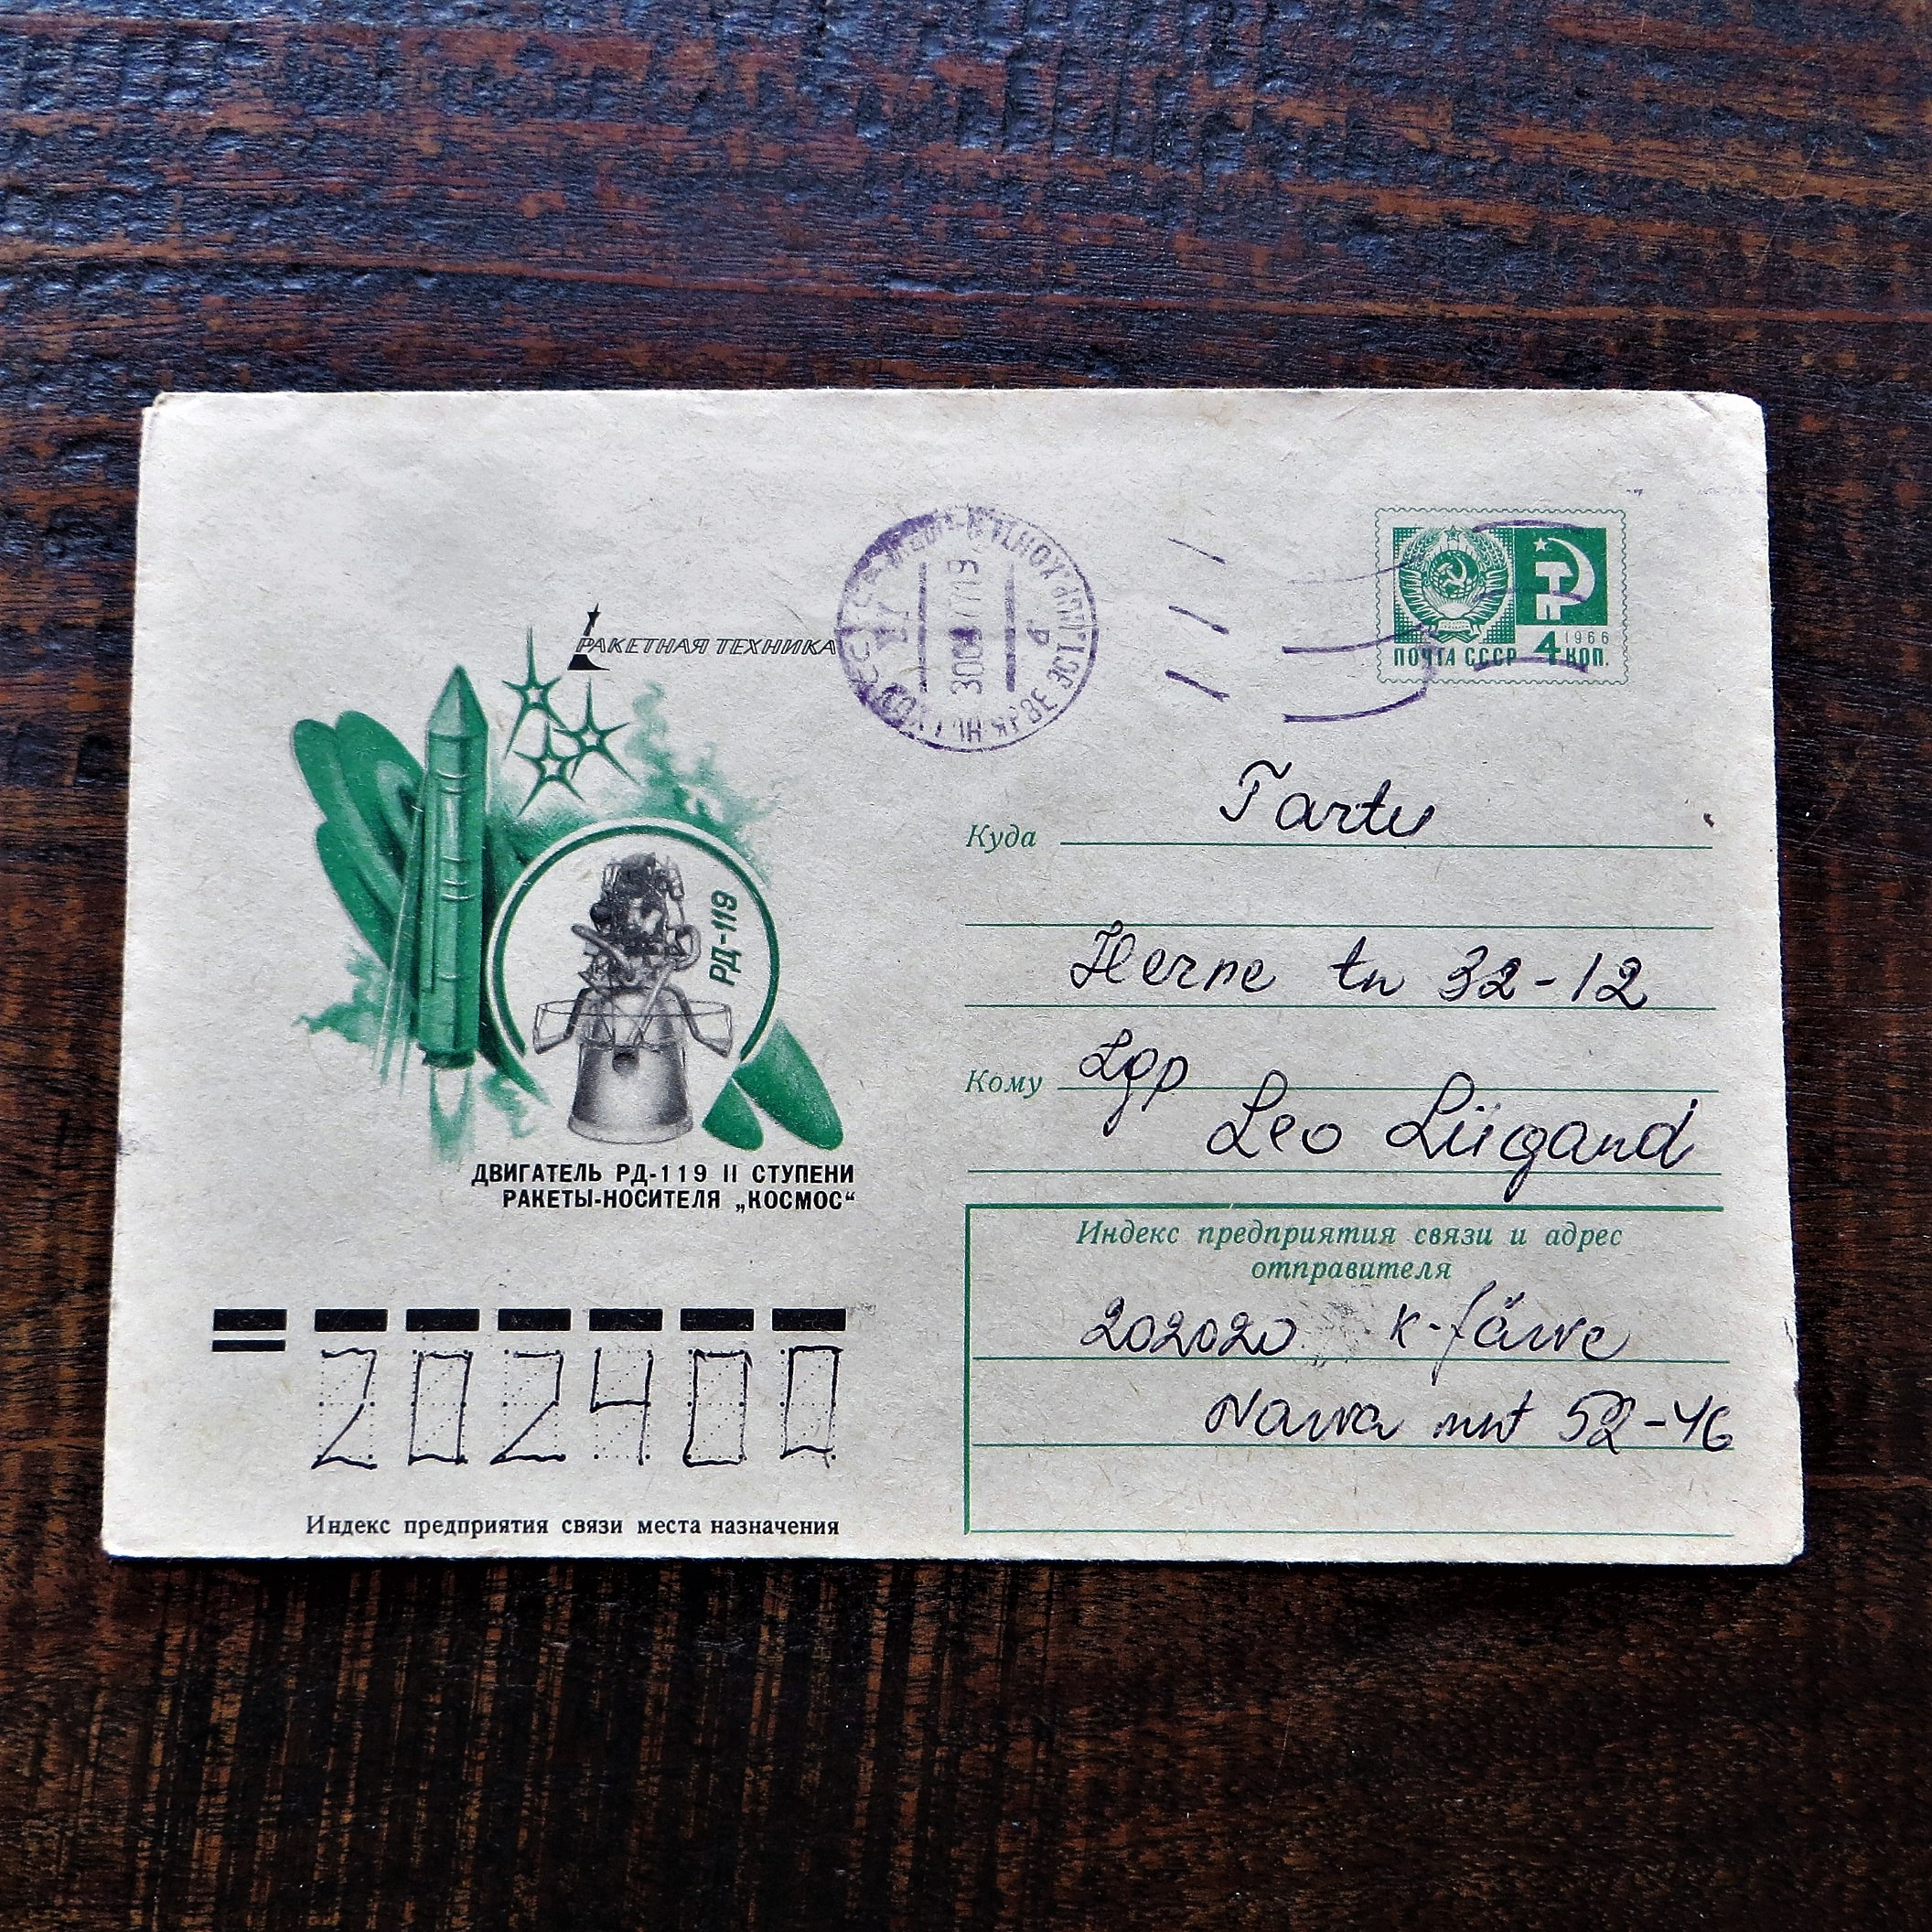 fdc-rd-119-1